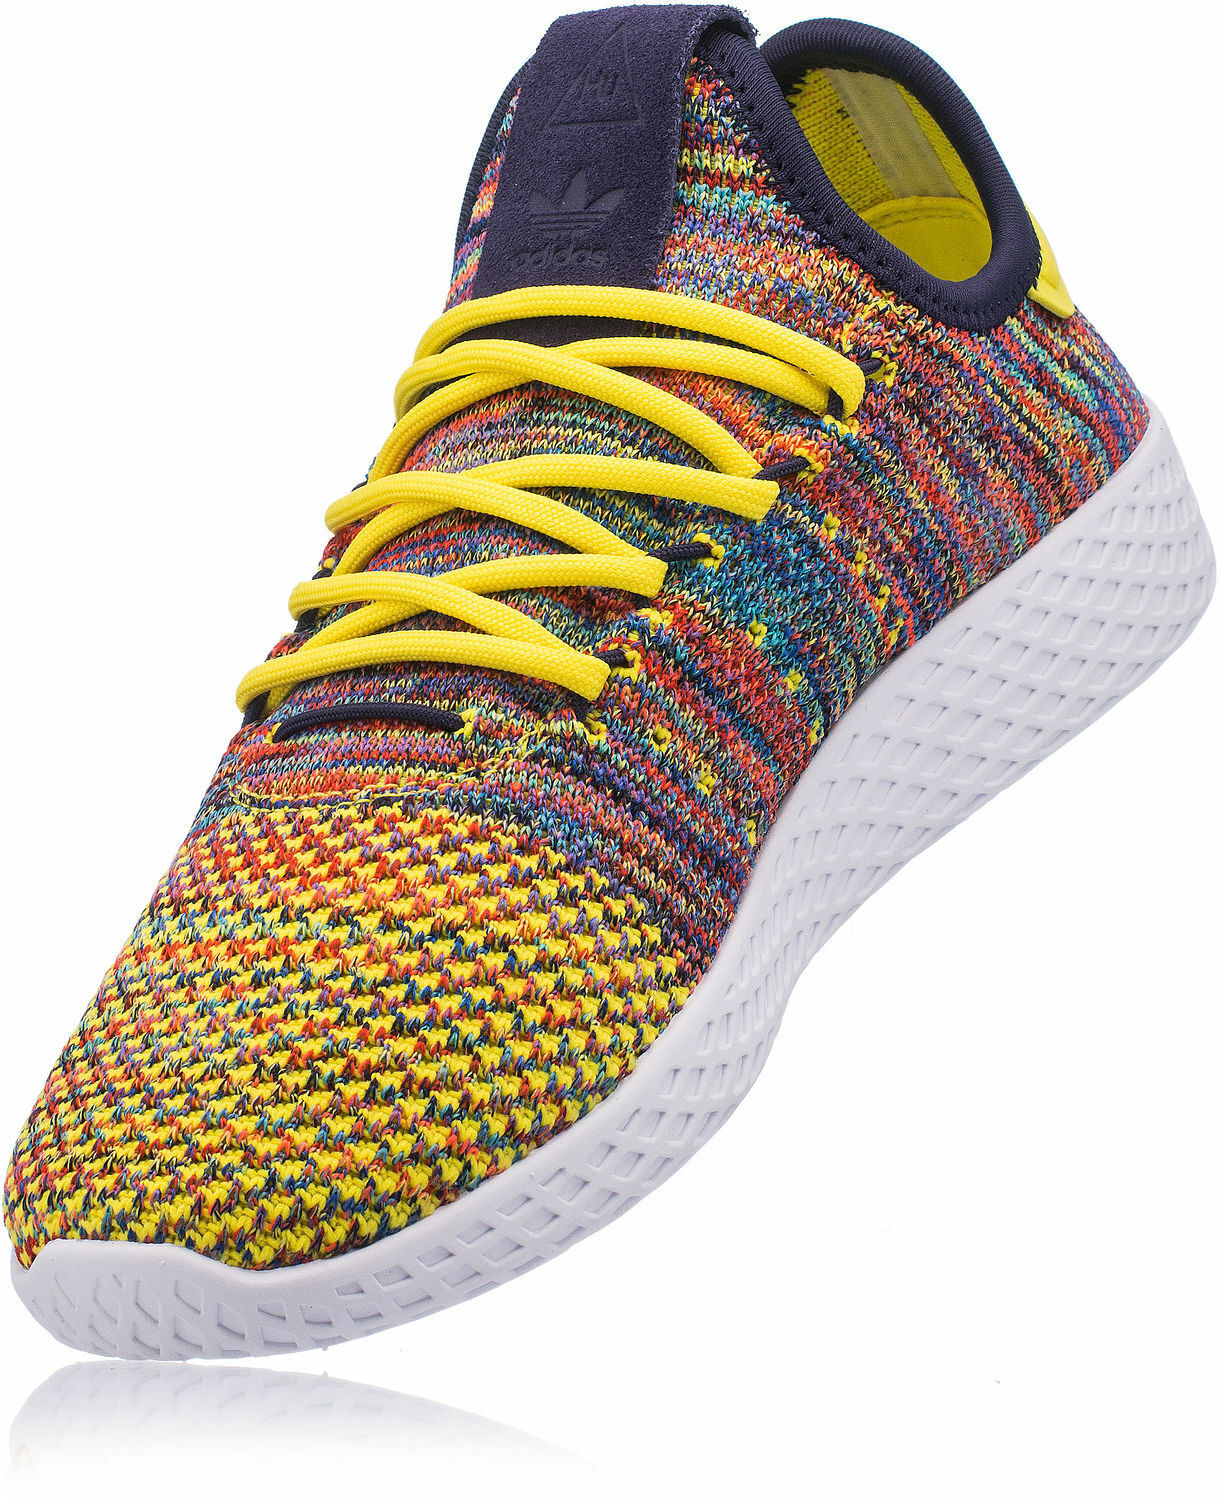 Adidas Pharrell Williams Tennis HU Primeknit MultiFarbe Trainers Turnschuhe BY2673